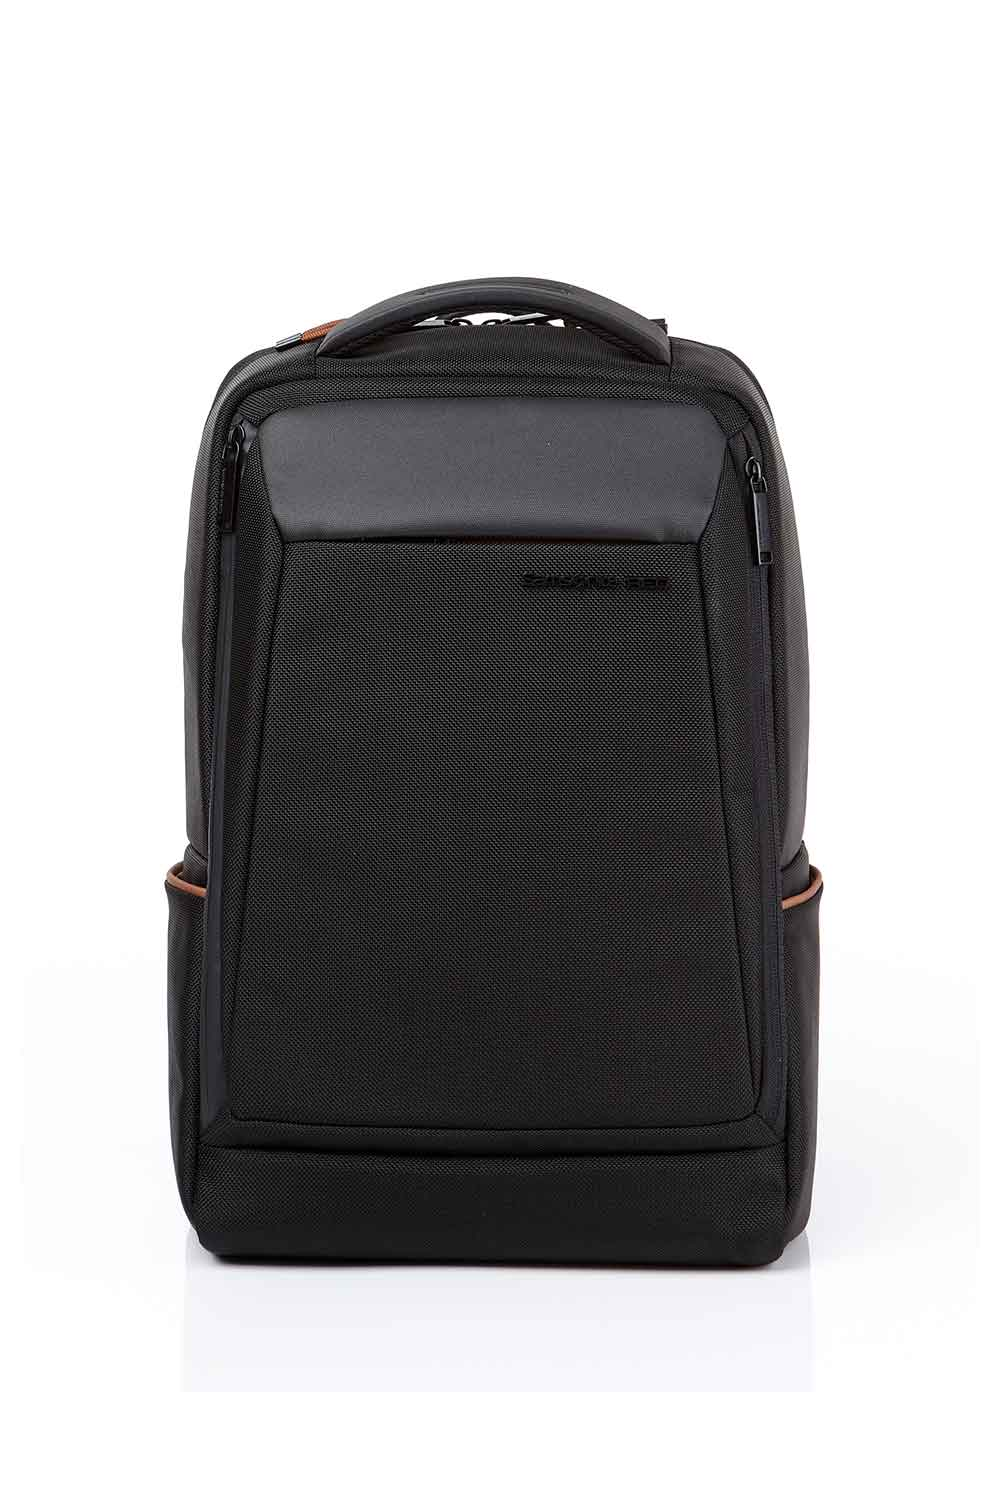 Samsonite RED Ruthvean 後背包M